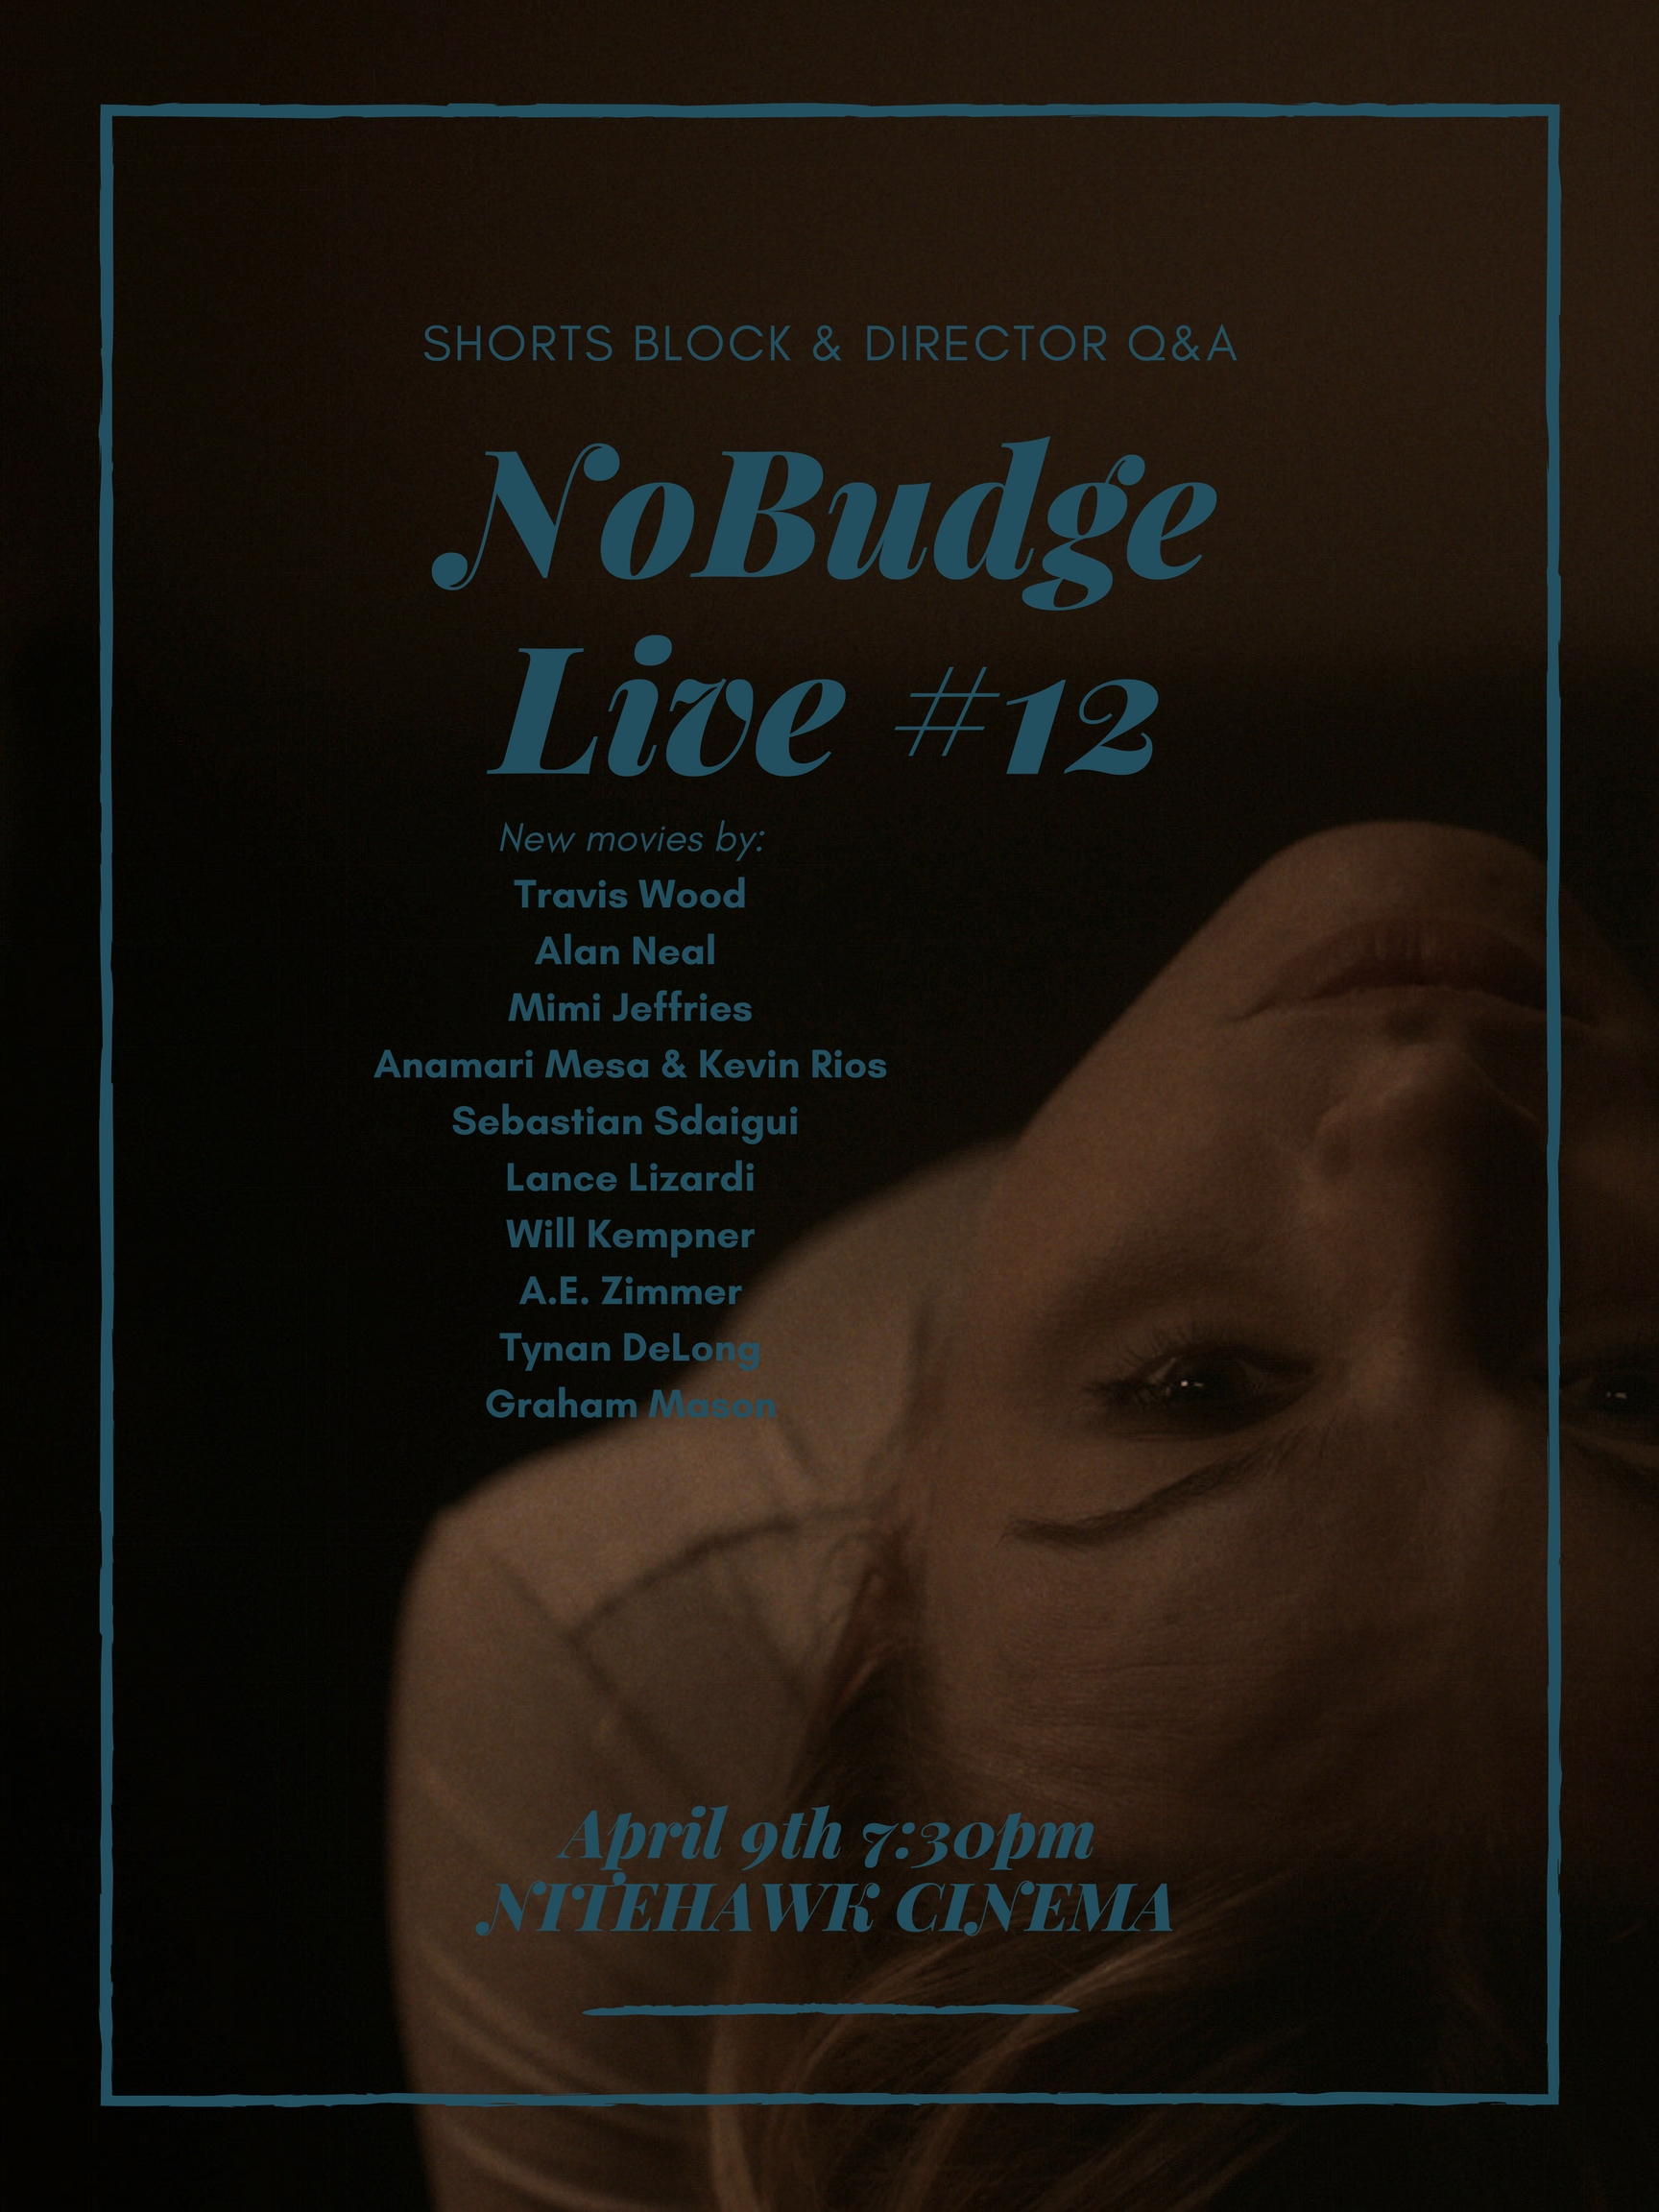 Poster for NoBudge Live #12